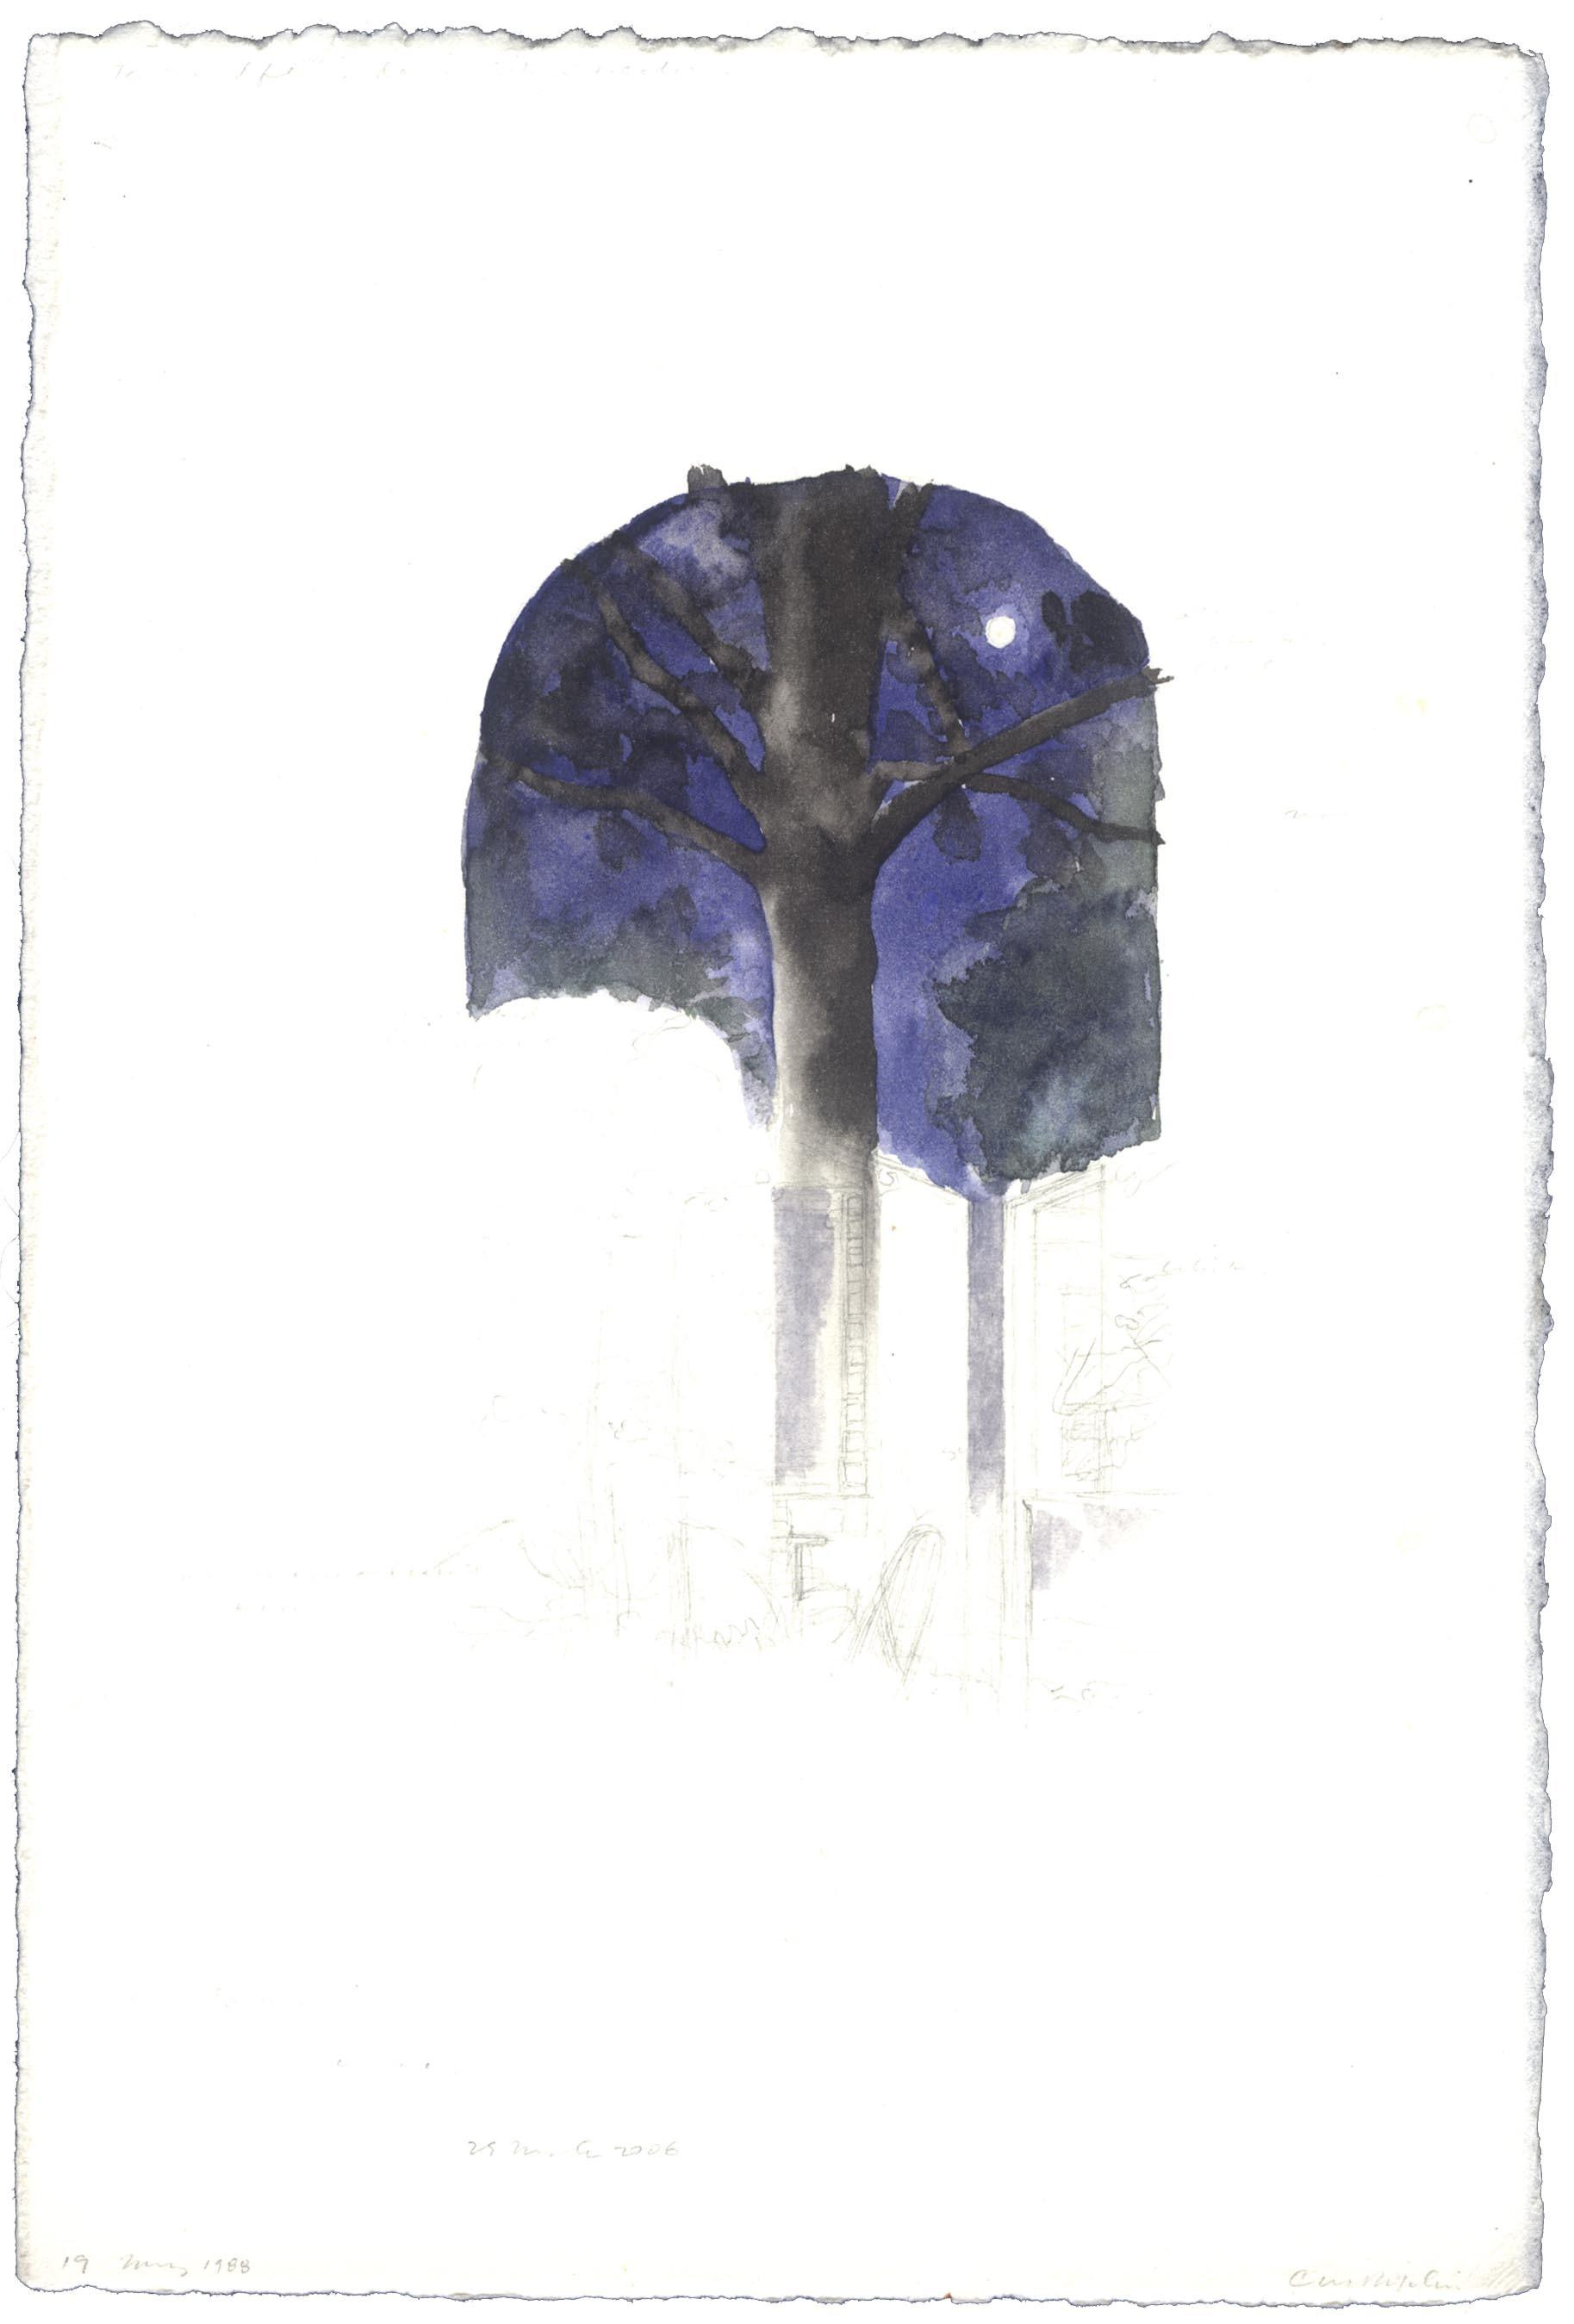 Self-Portrait with Full Moon and Tree image